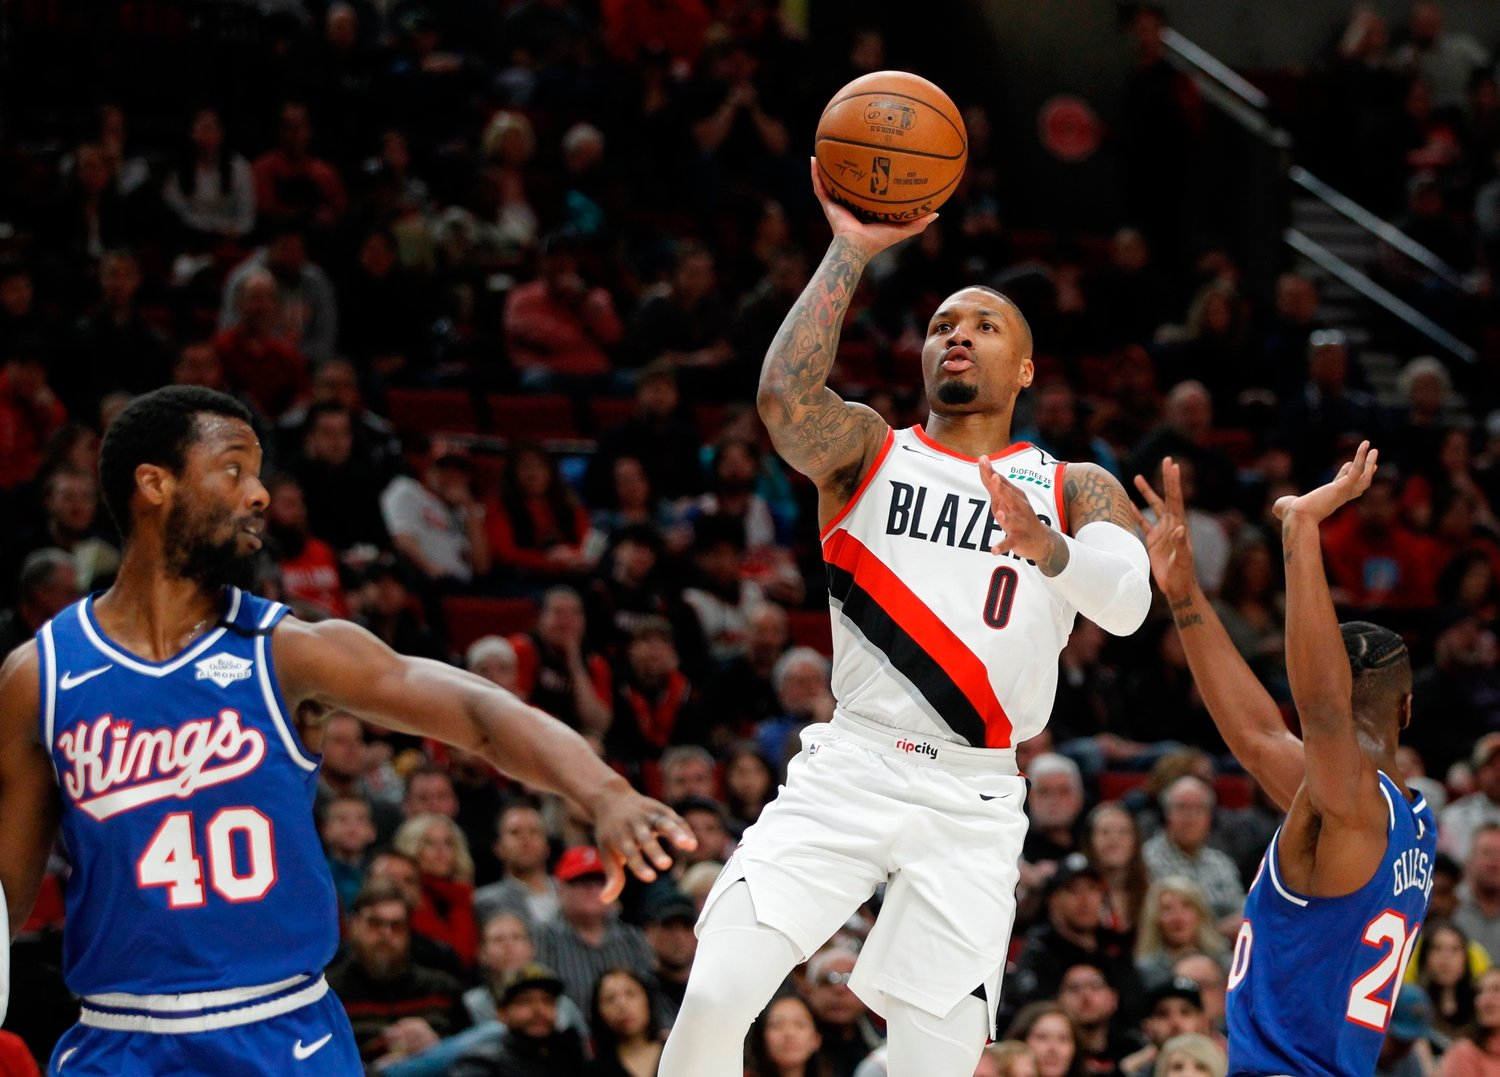 In this Saturday, March 7, 2020, file photo, Portland Trail Blazers guard Damian Lillard, center, shoots as Sacramento Kings forward Harrison Barnes, left, and forward Harry Giles III, right, defend during the first half of an NBA basketball game in Portland, Ore. Lillard says he will spend most of his downtime working on recording music while inside the NBA bubble. (AP Photo/Steve Dipaola, File)